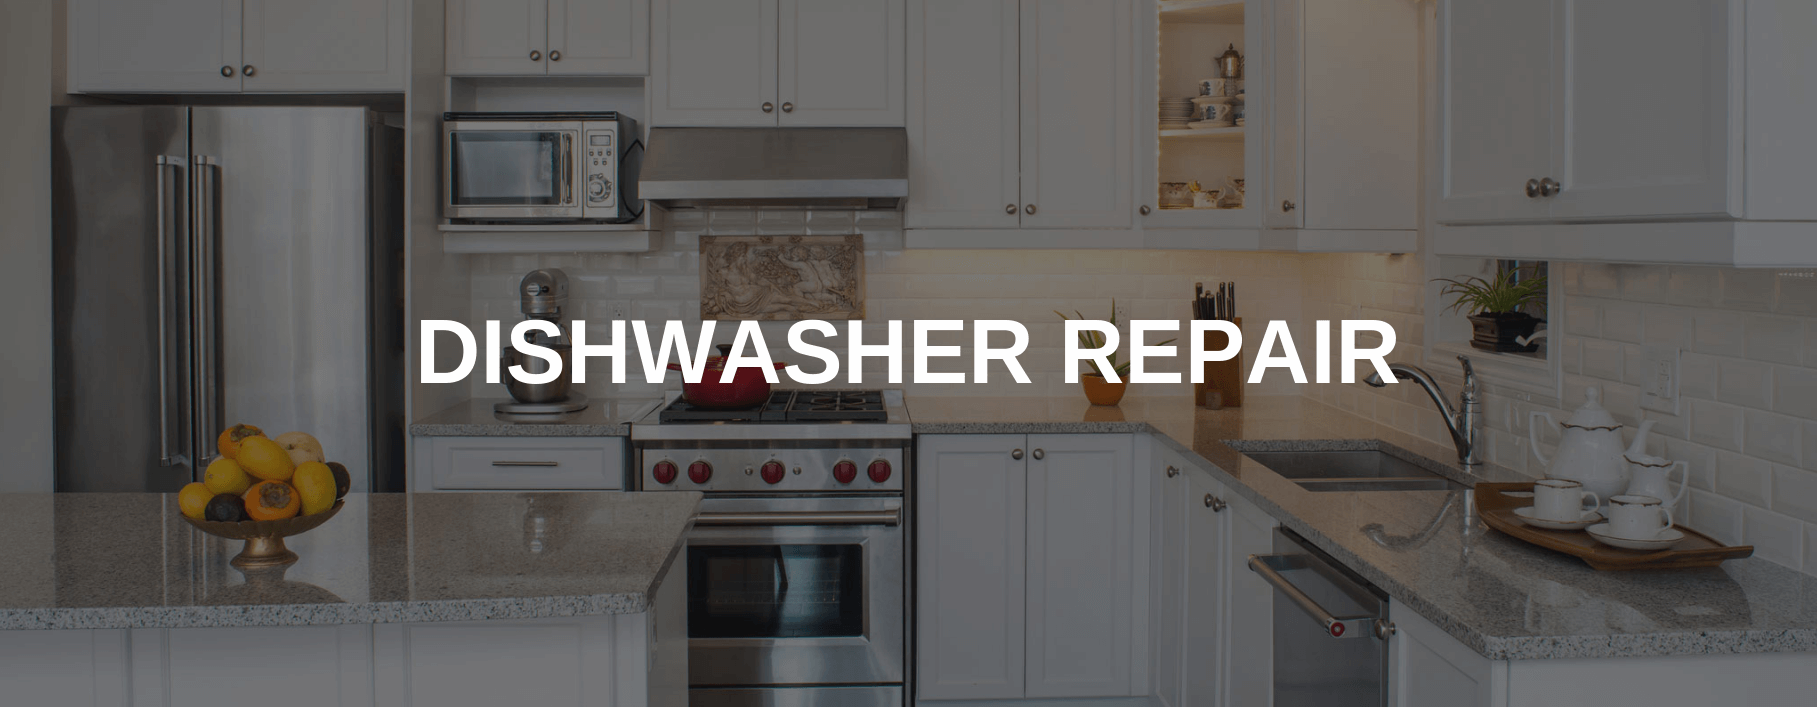 dishwasher repair orlando